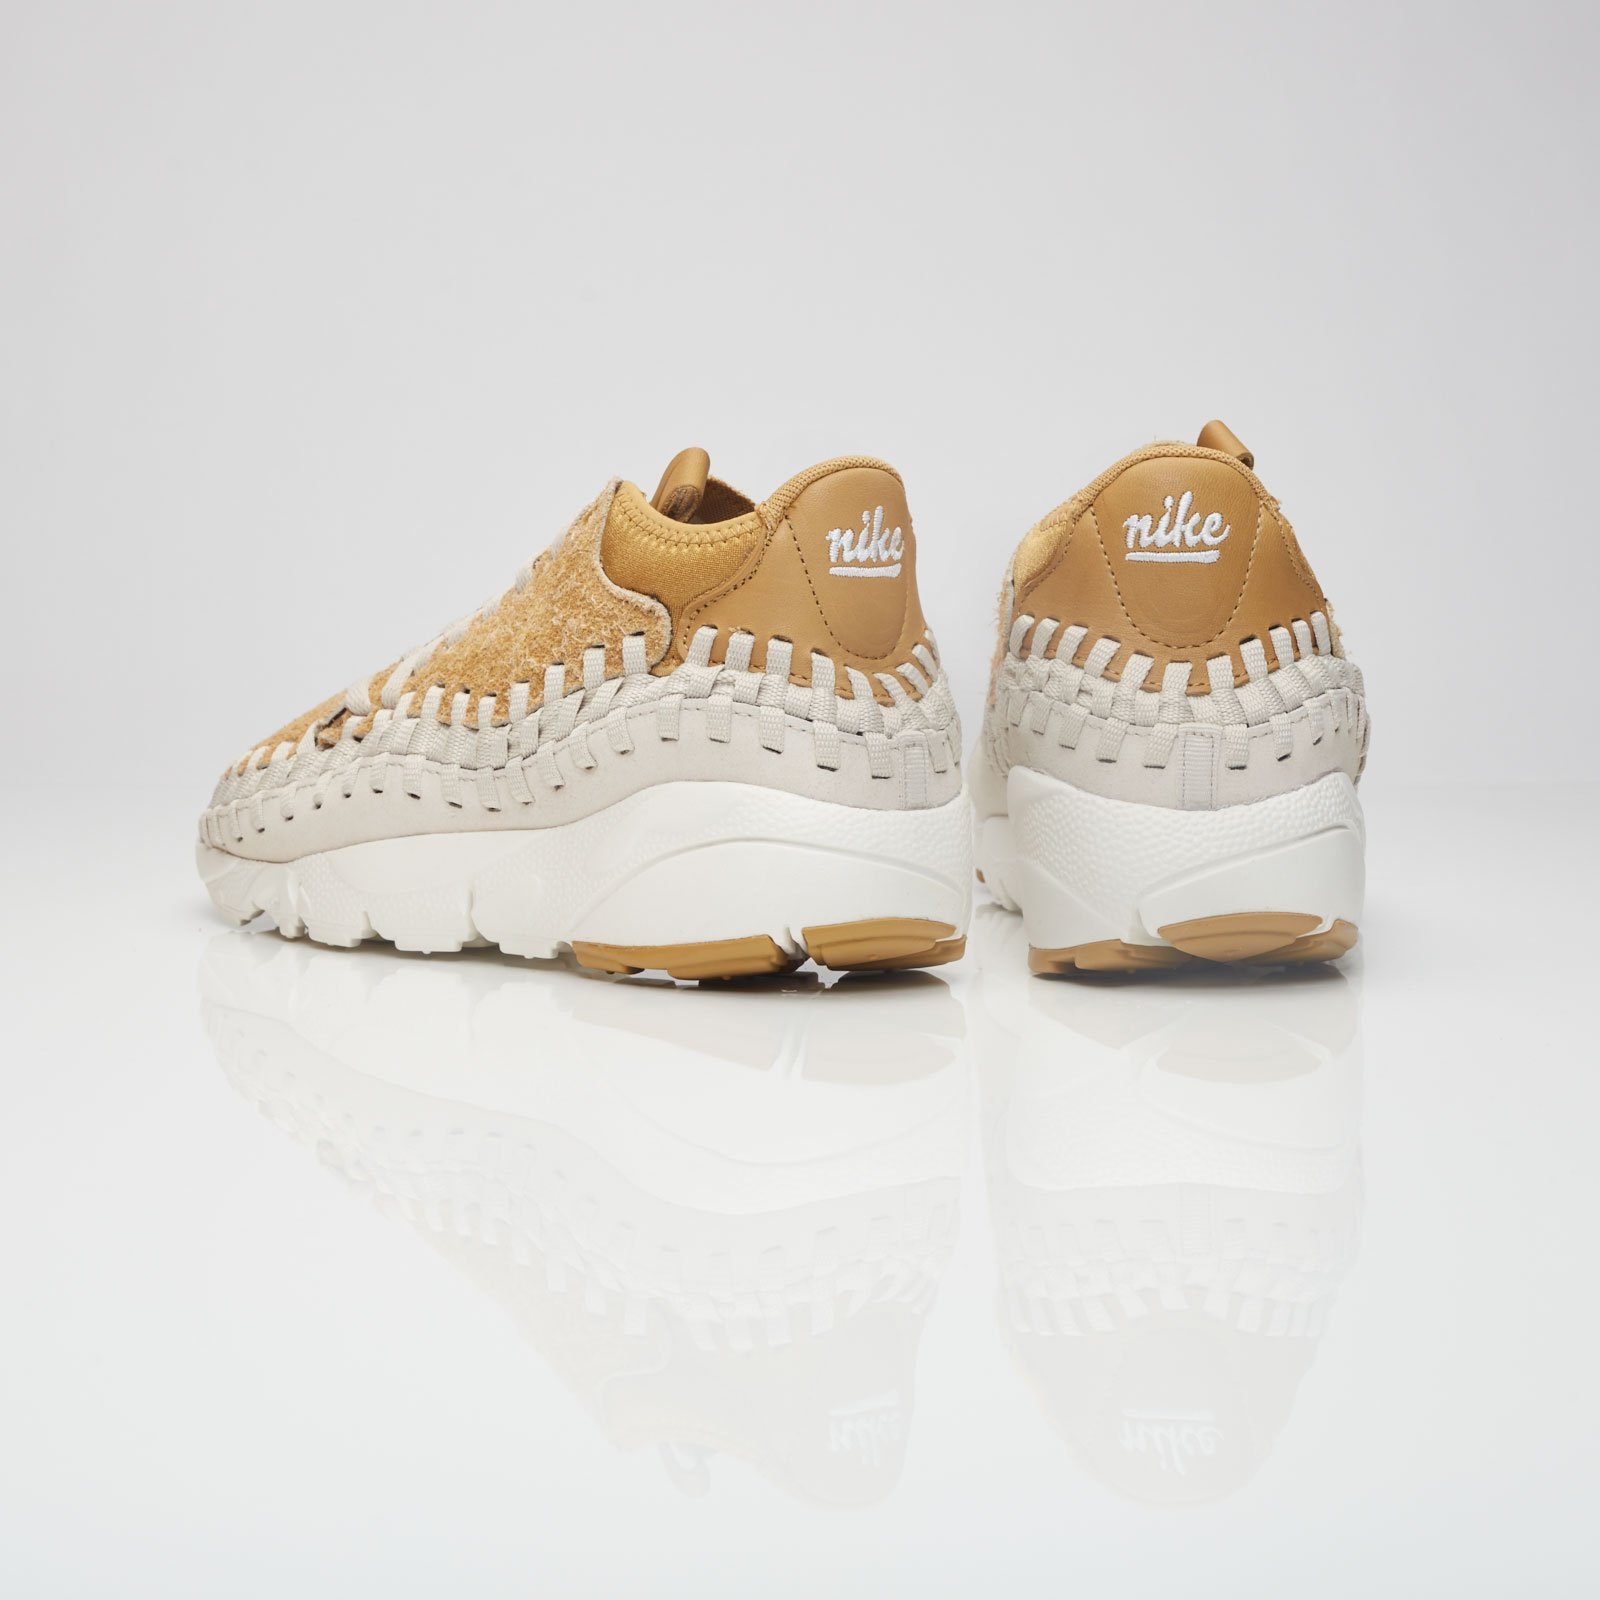 official photos 19f46 3bcb9 Nike Air Footscape Woven Chukka Qs - 913929-700 - Sneakersnstuff   sneakers    streetwear online since 1999